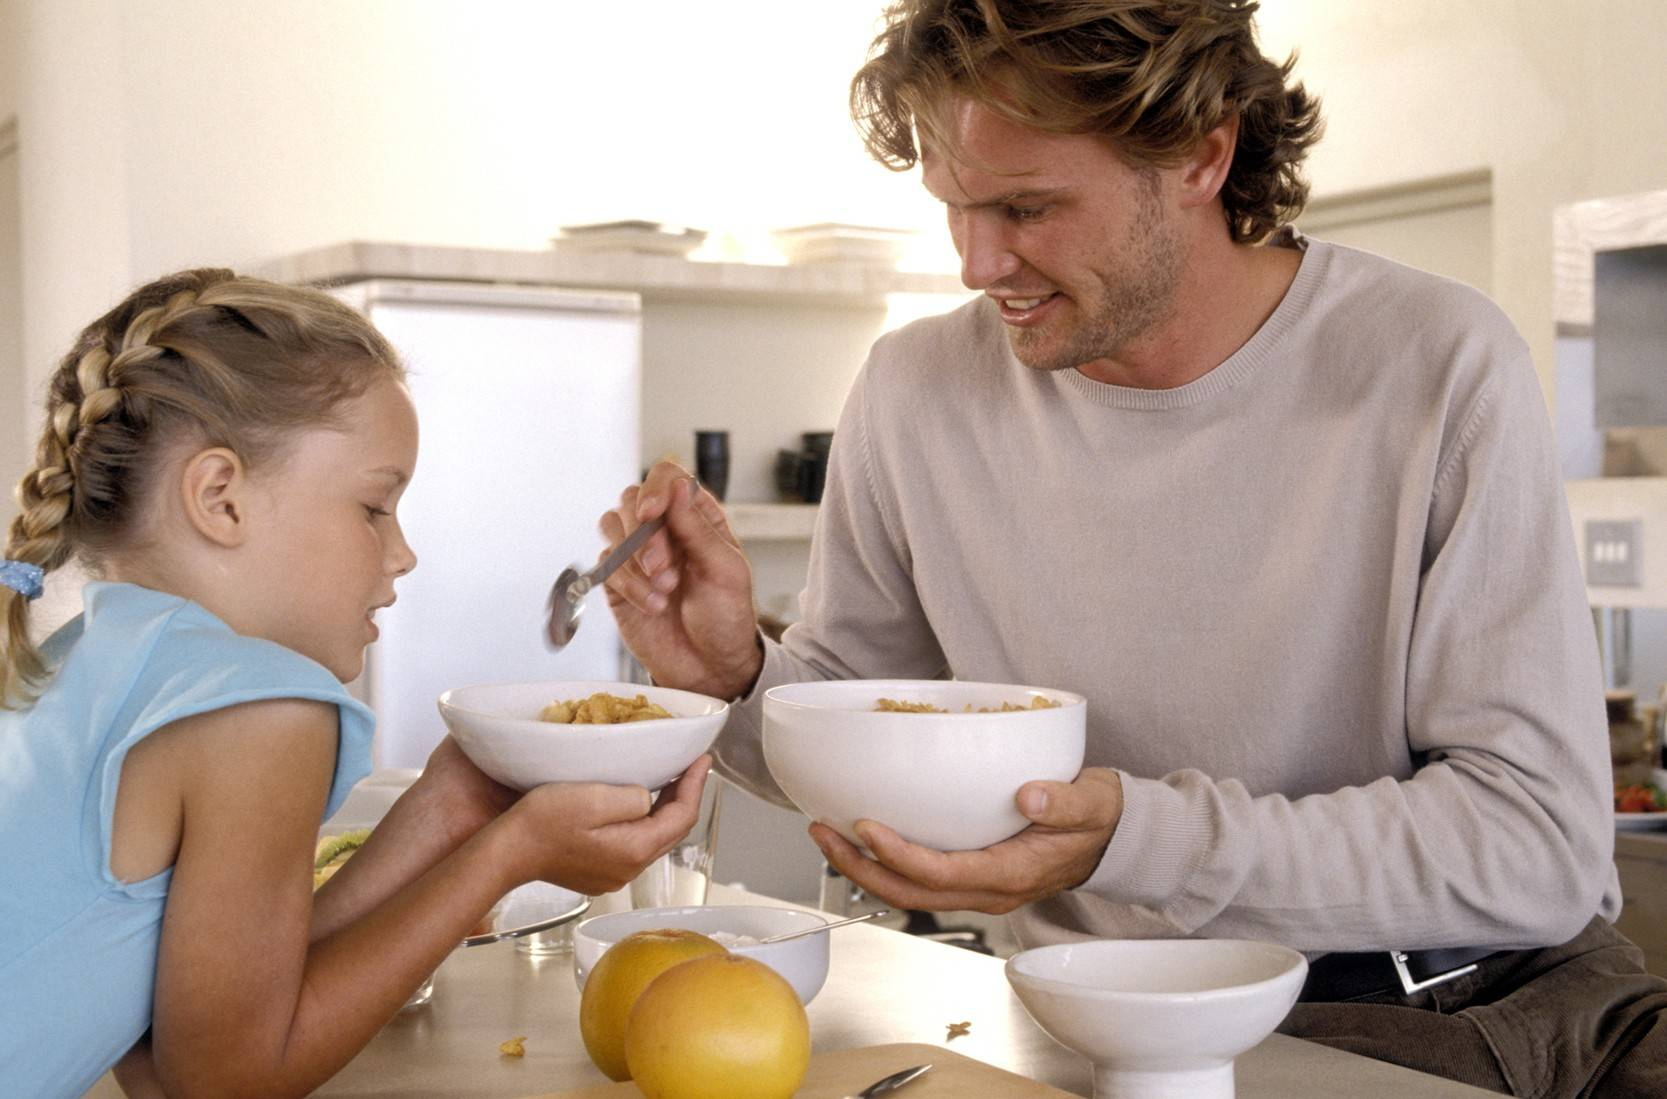 A new report says children are ingesting potentially unhealthy amounts of vitamins from fortified breakfast cereals.